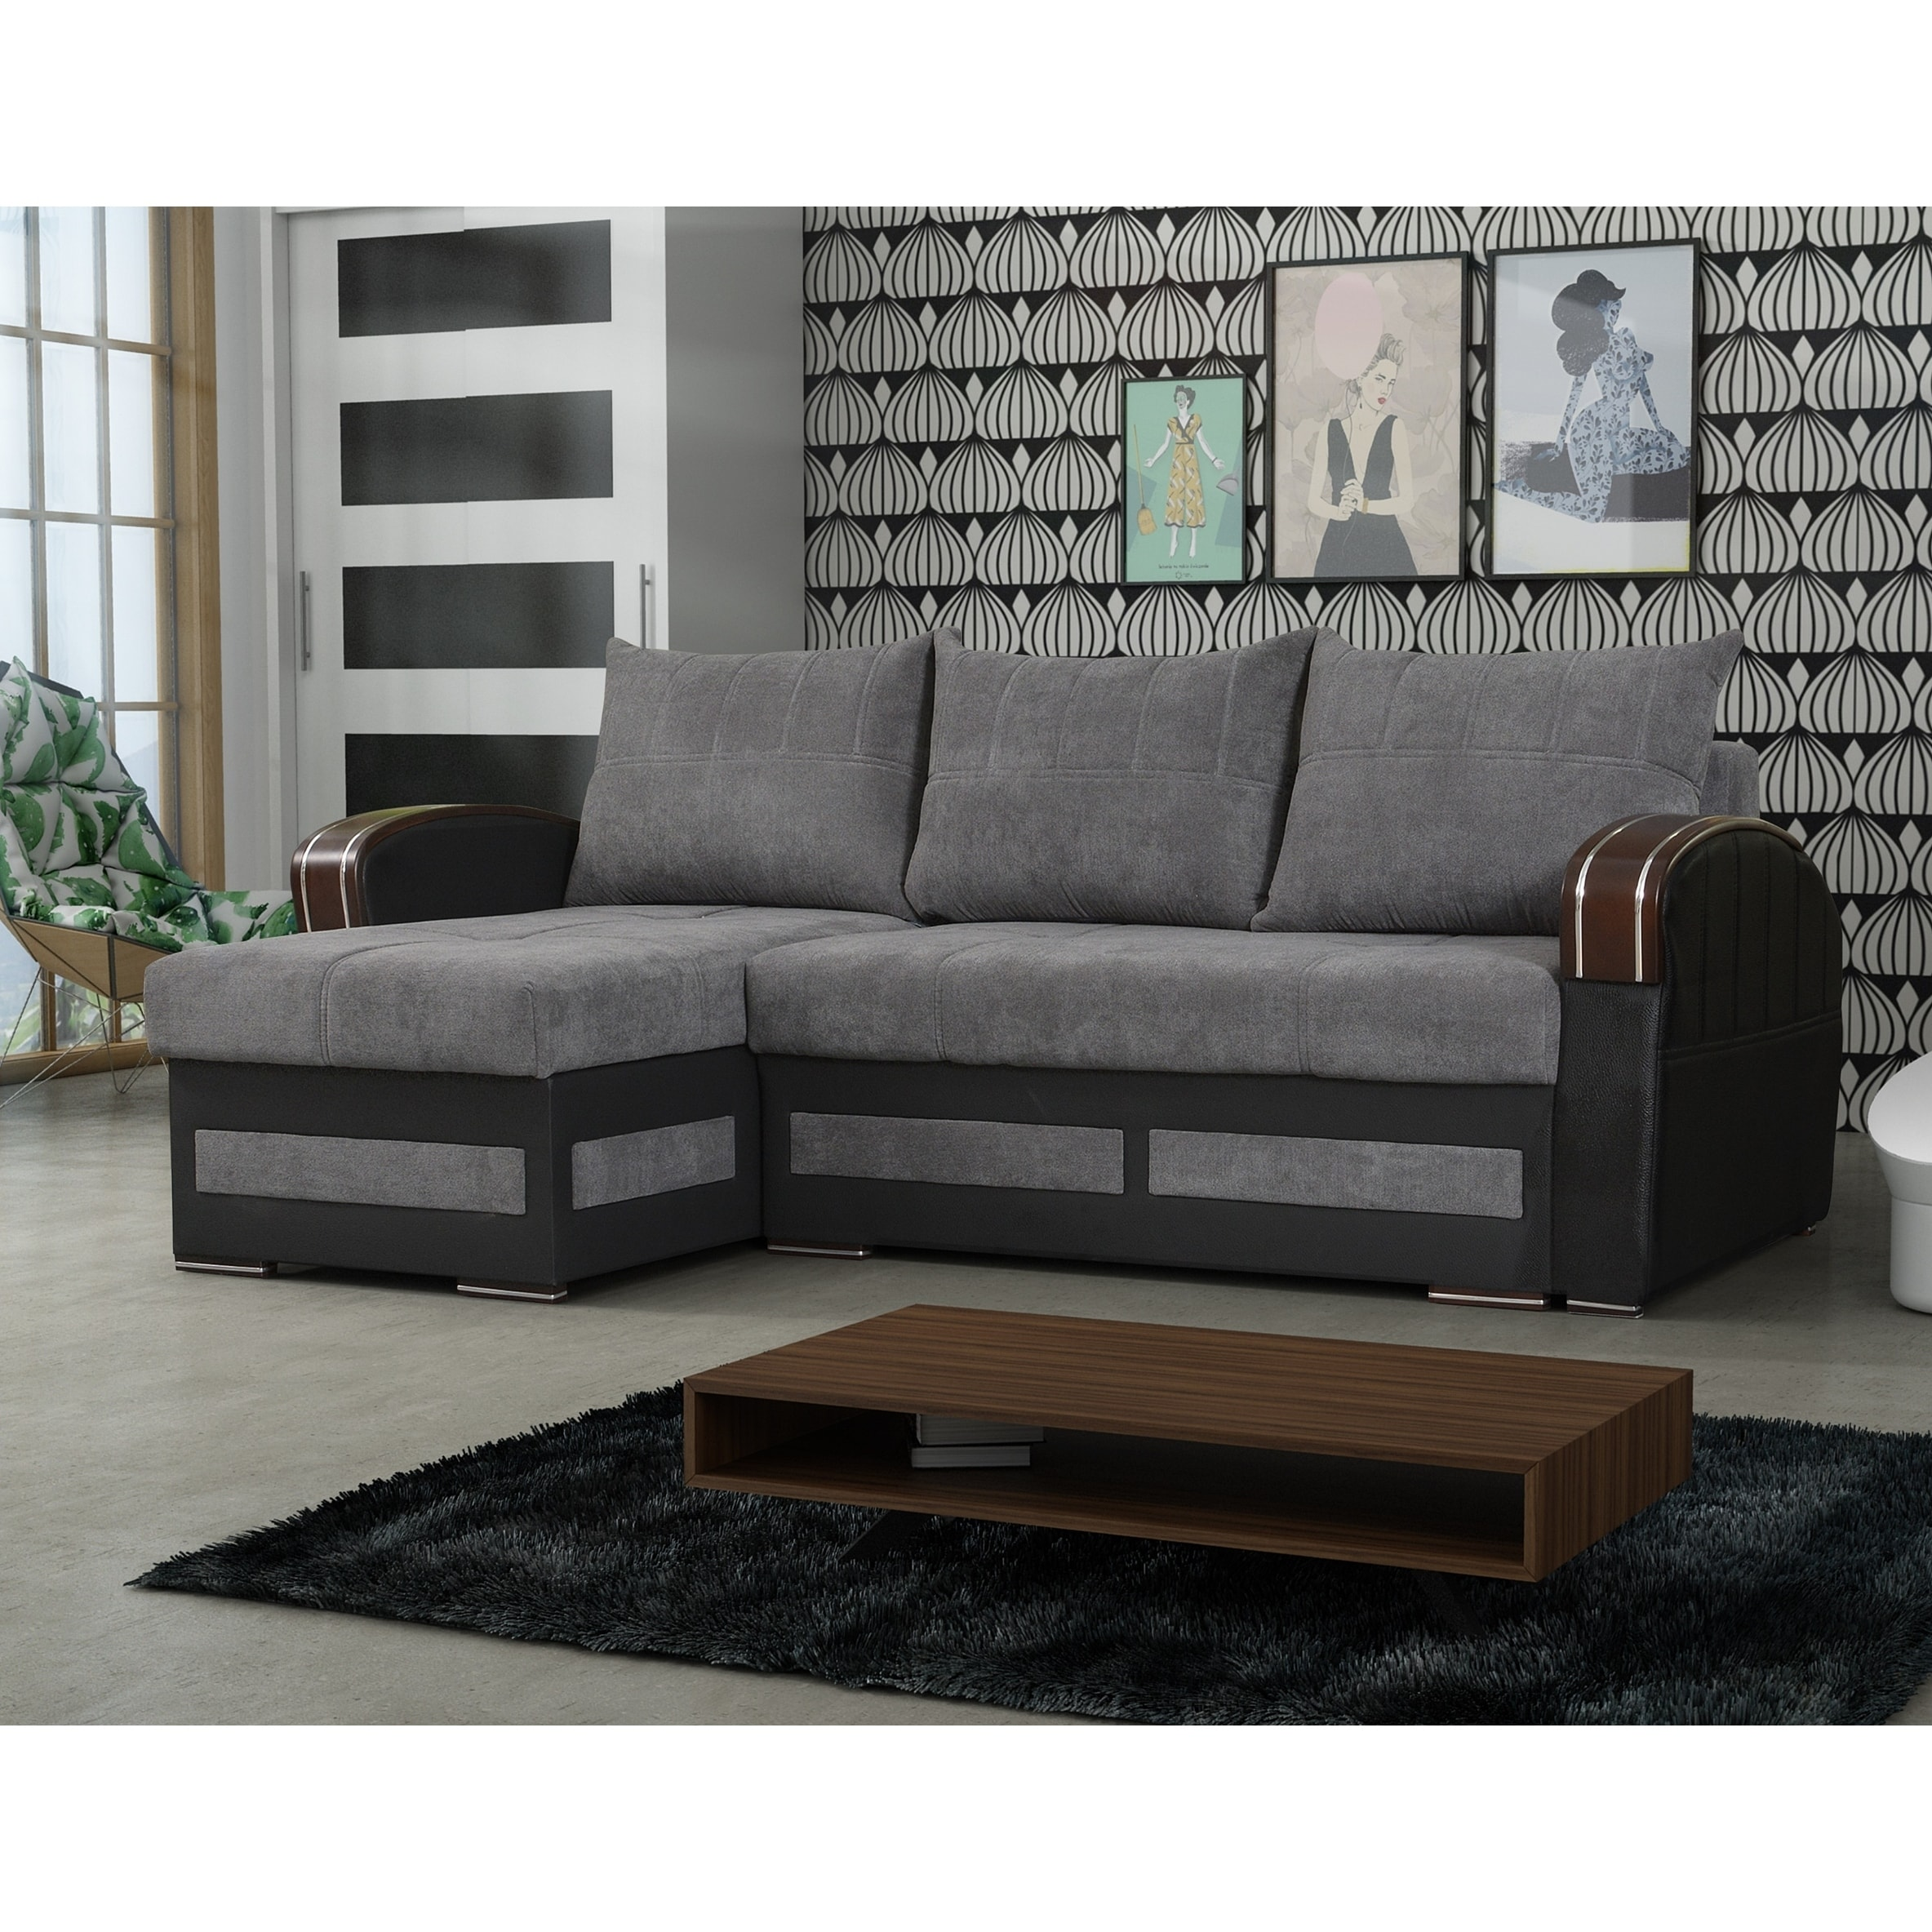 riverhead grey fabric reversible sleeper sectional sofa with storage